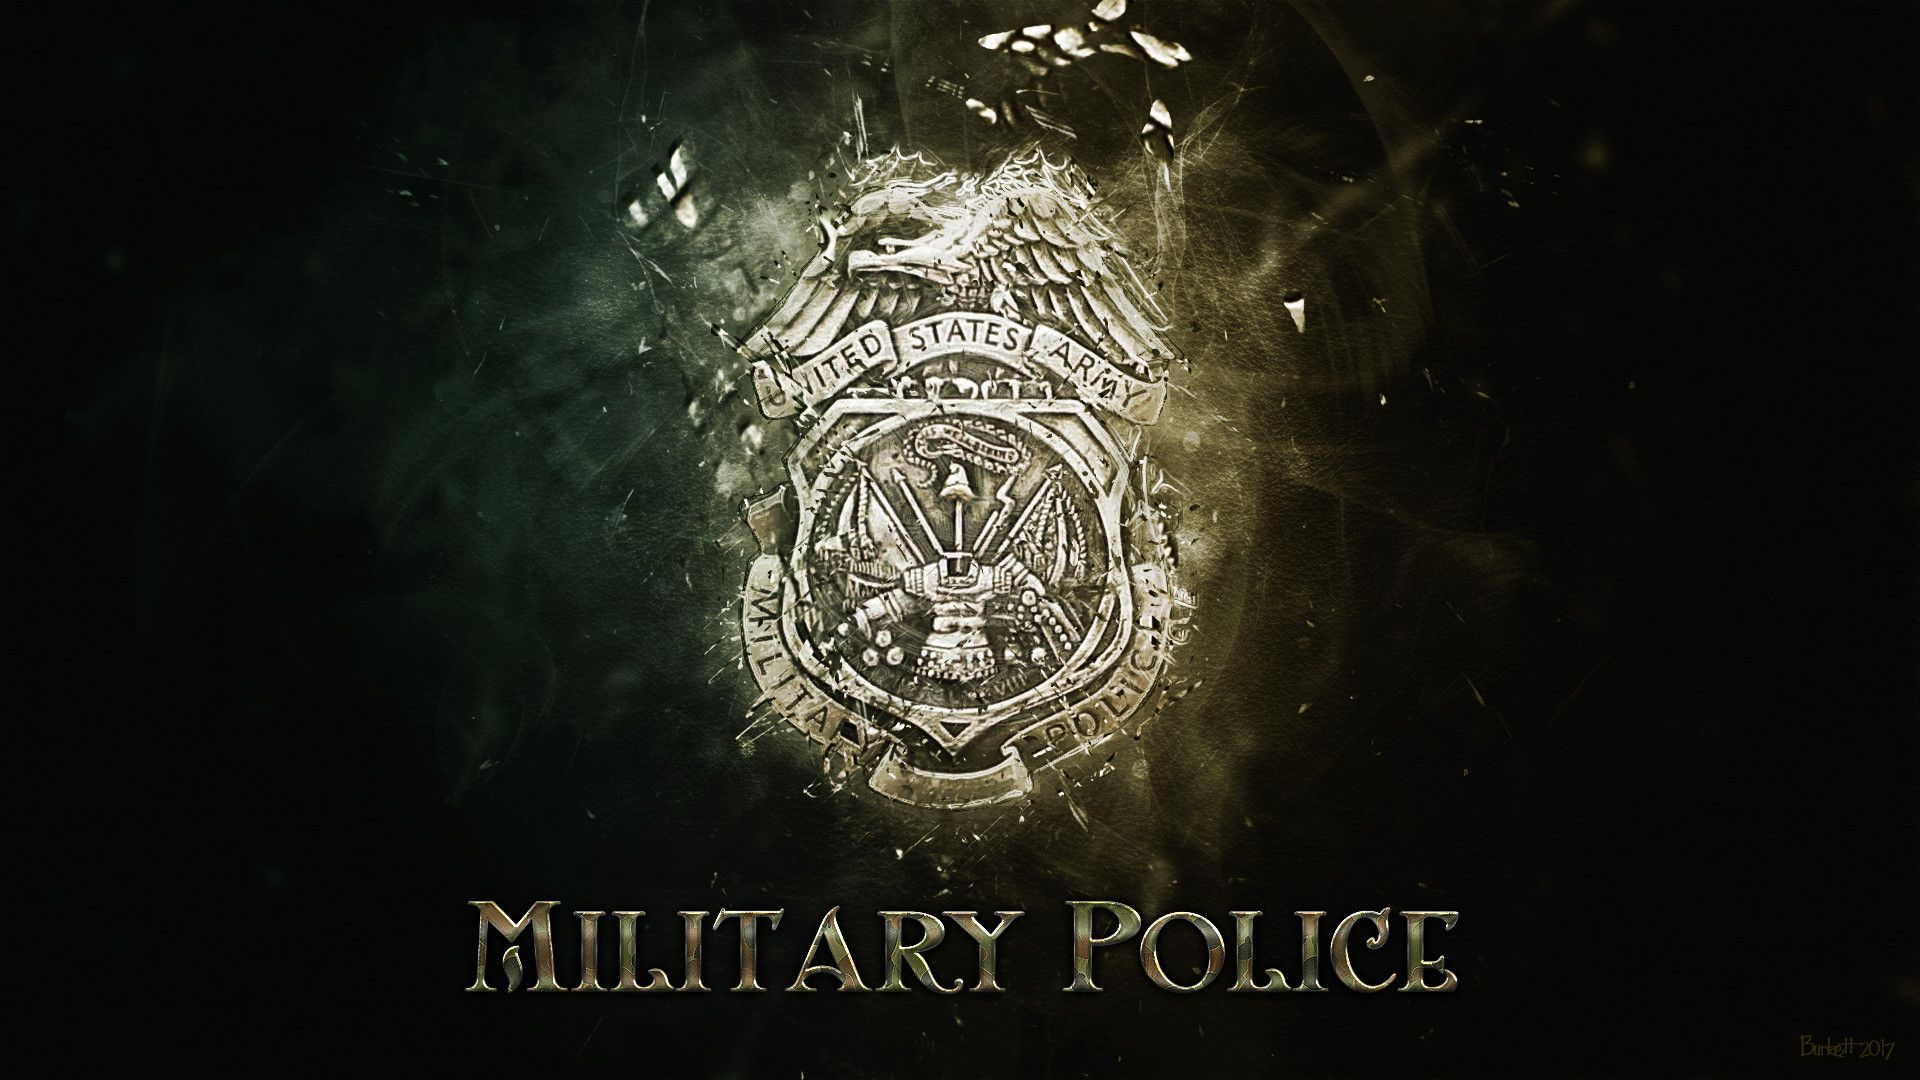 1920x1080 US Army Military Police Wallpaper (57+ images)